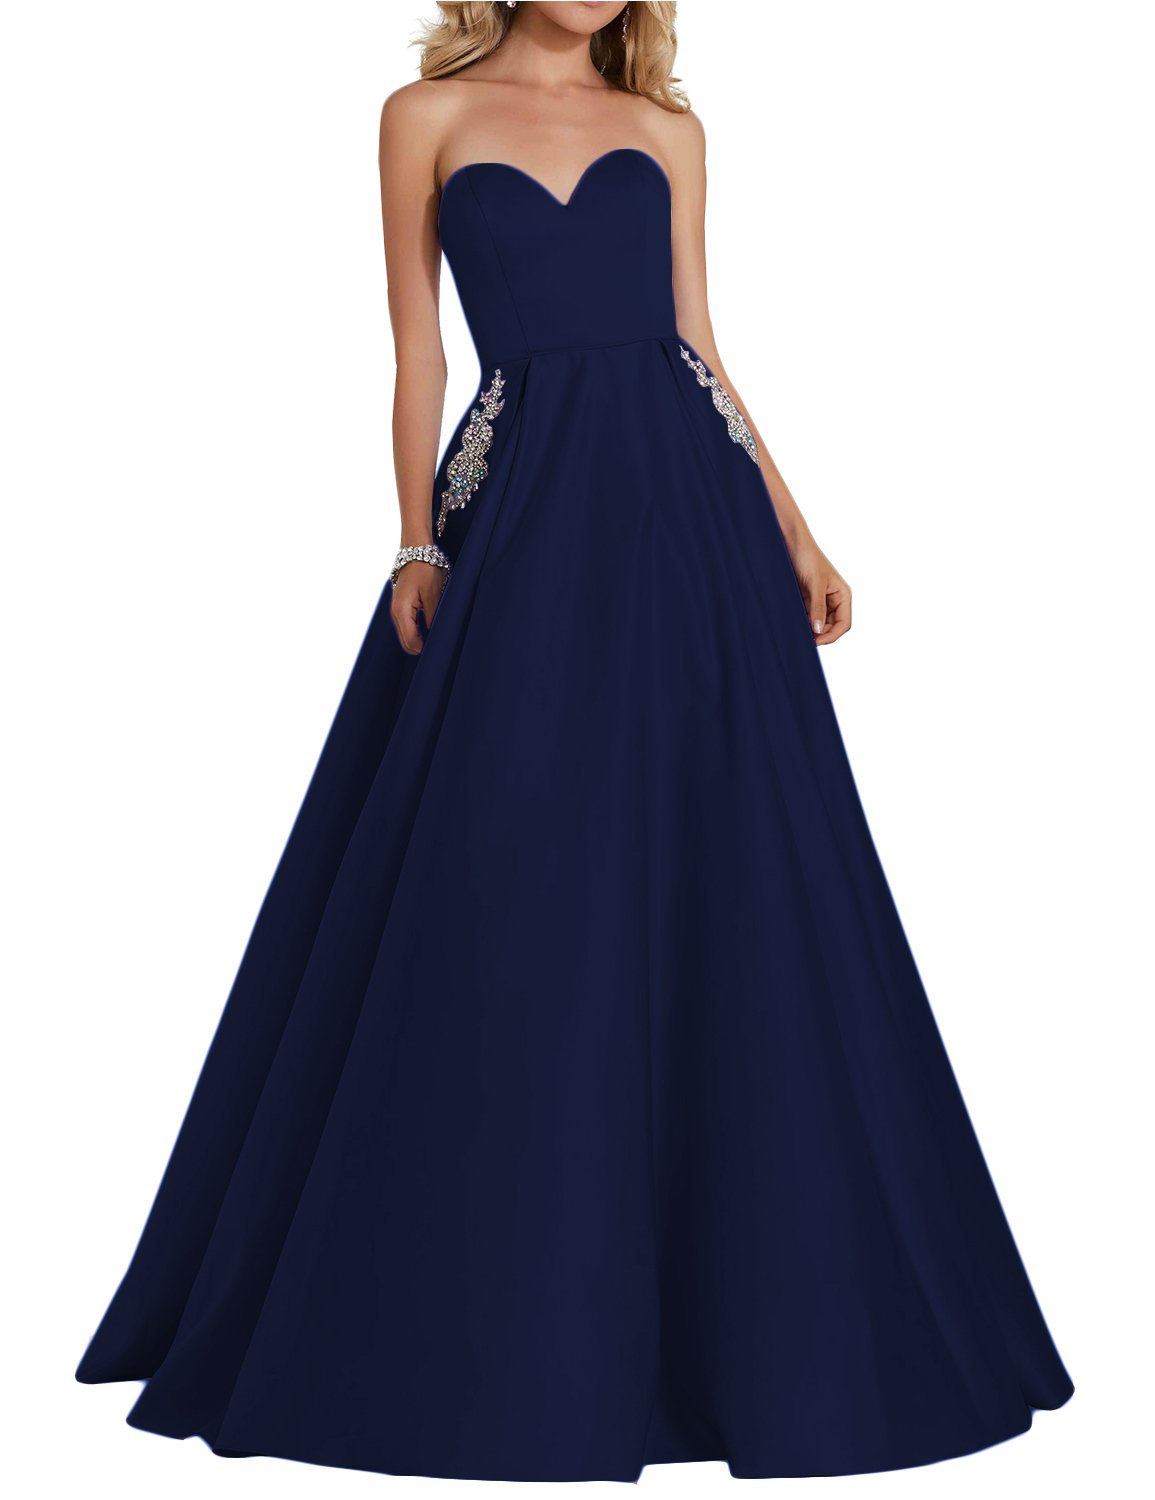 YIRENWANSHA 2018 Evening Dresses Plus Size Empire Waist Strapless Bodycon  Manual Beaded Formal Gowns With Pockets Full Length Elegant Sweetheart Prom  ...